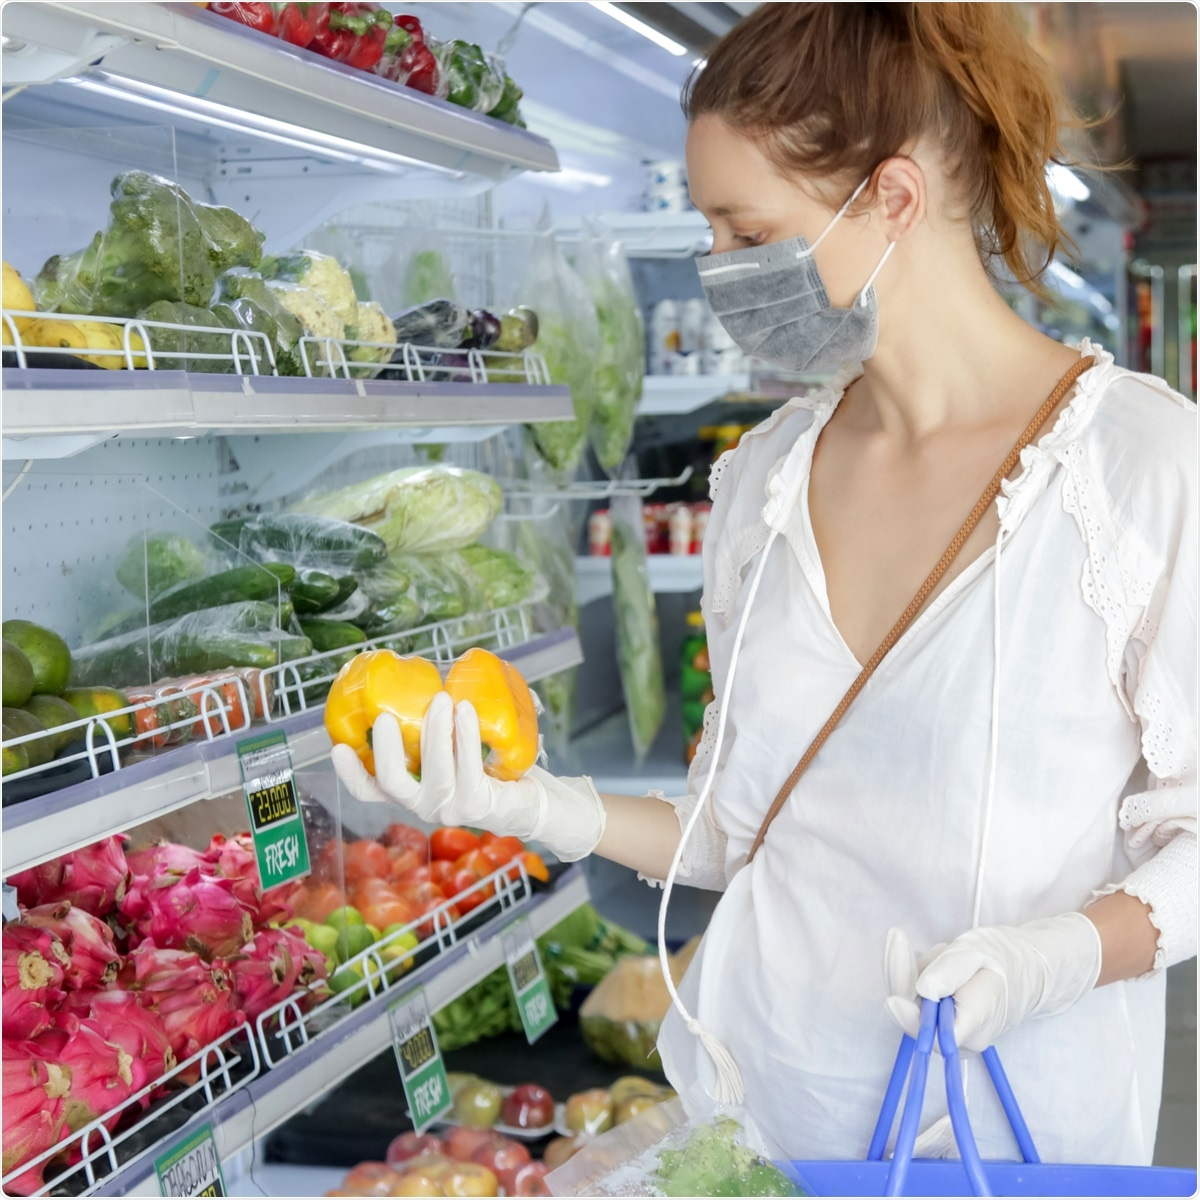 Study: Food Products as Potential Carriers of SARS-CoV-2. Image Credit: triocean / Shutterstock